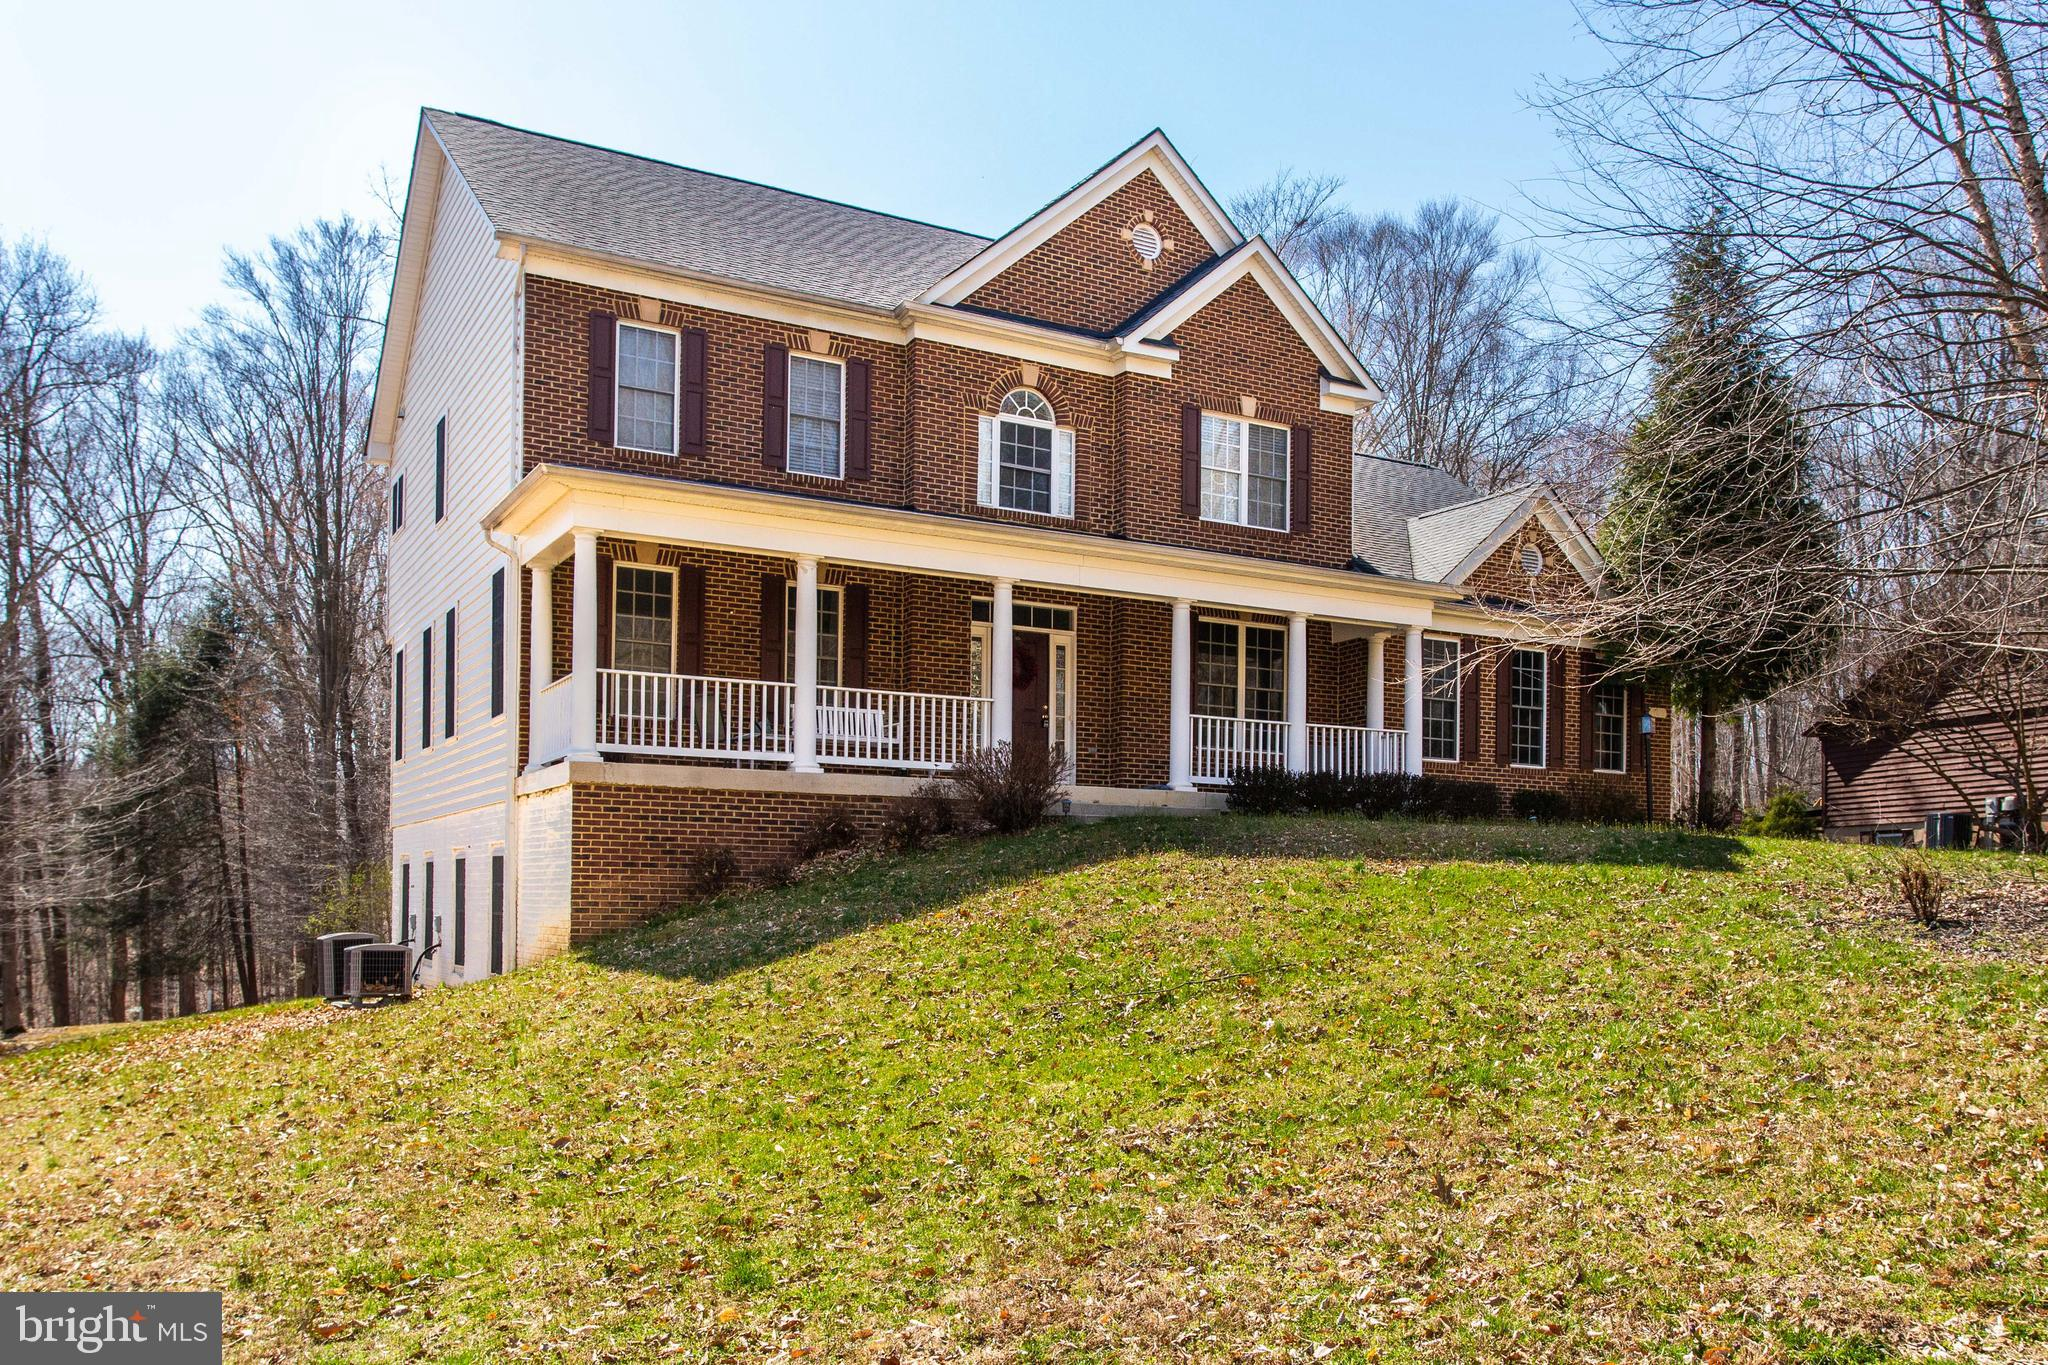 6775 RIVER ROAD, MANASSAS, VA 20111